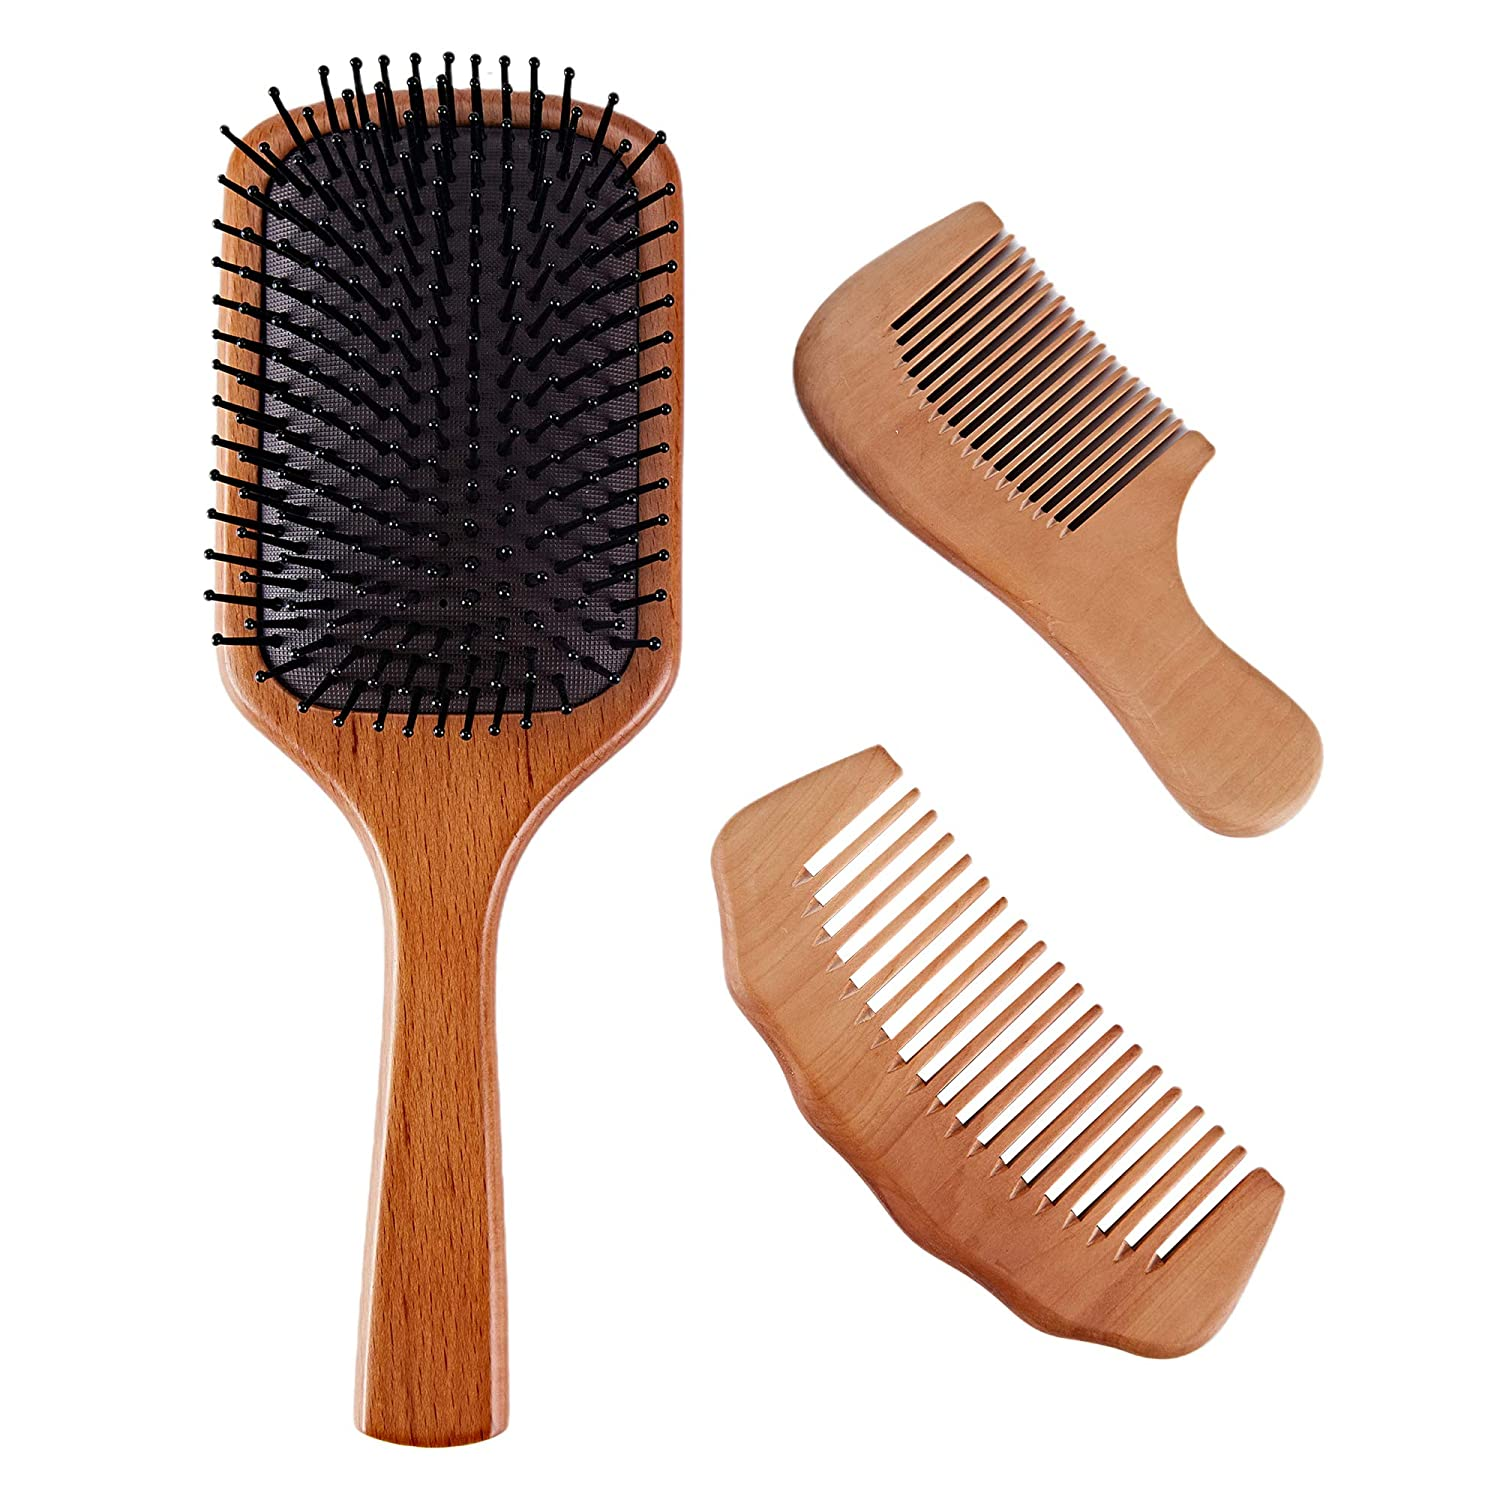 SELRSUF Nature Wooden Paddle Brushes Special Campaign Sale special price Massage Hair Kit Comb and